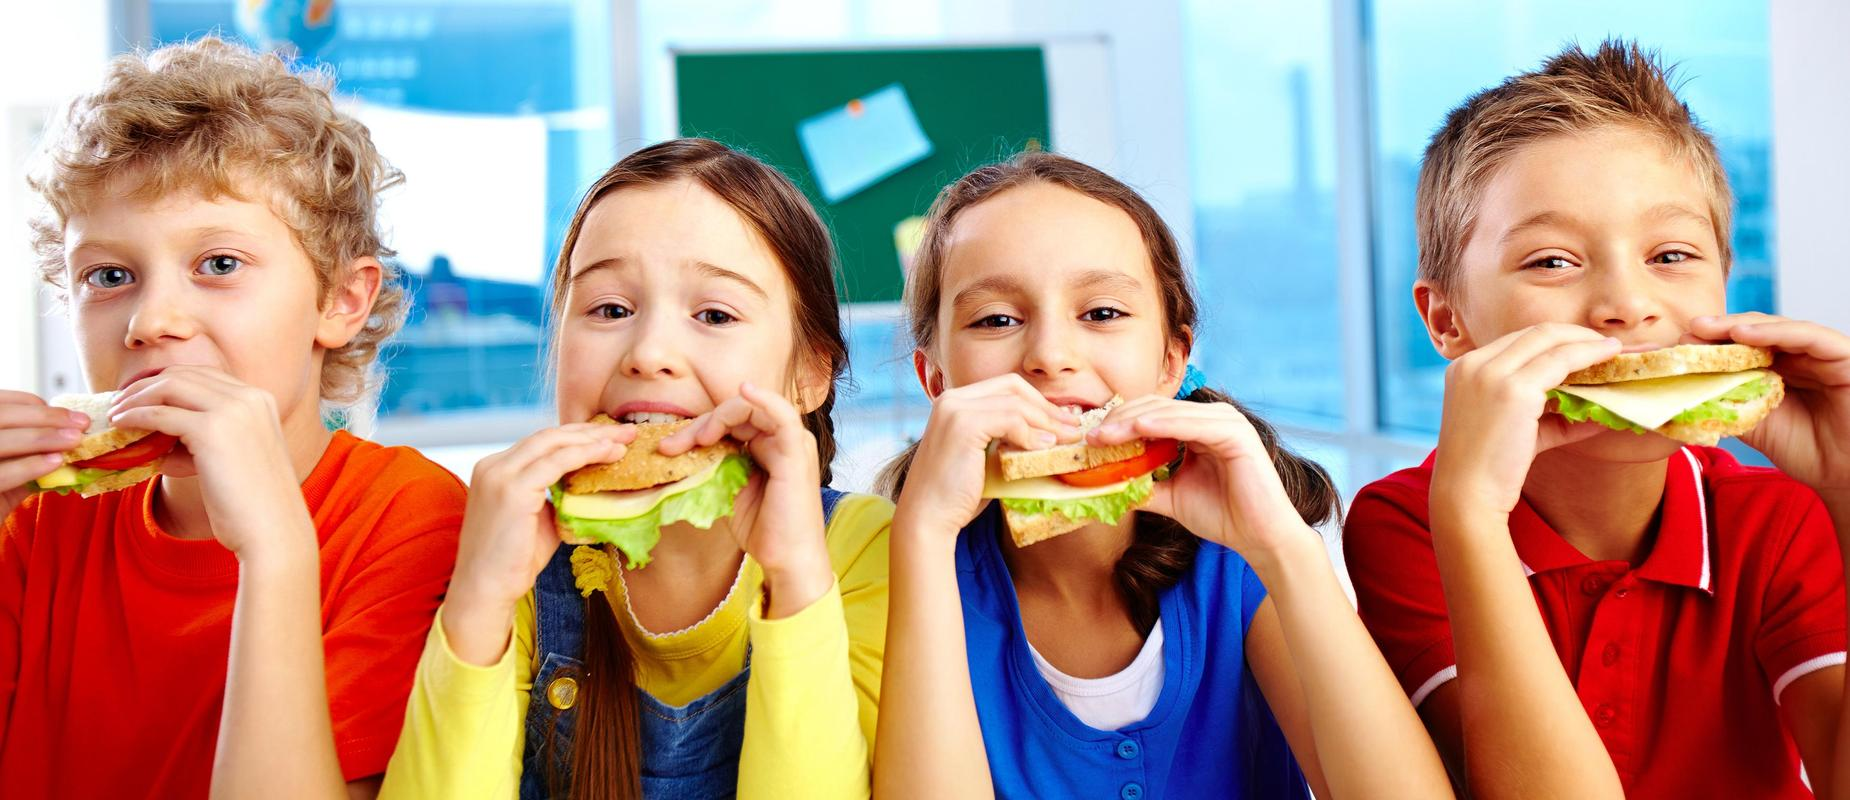 Kids eating a sandwich